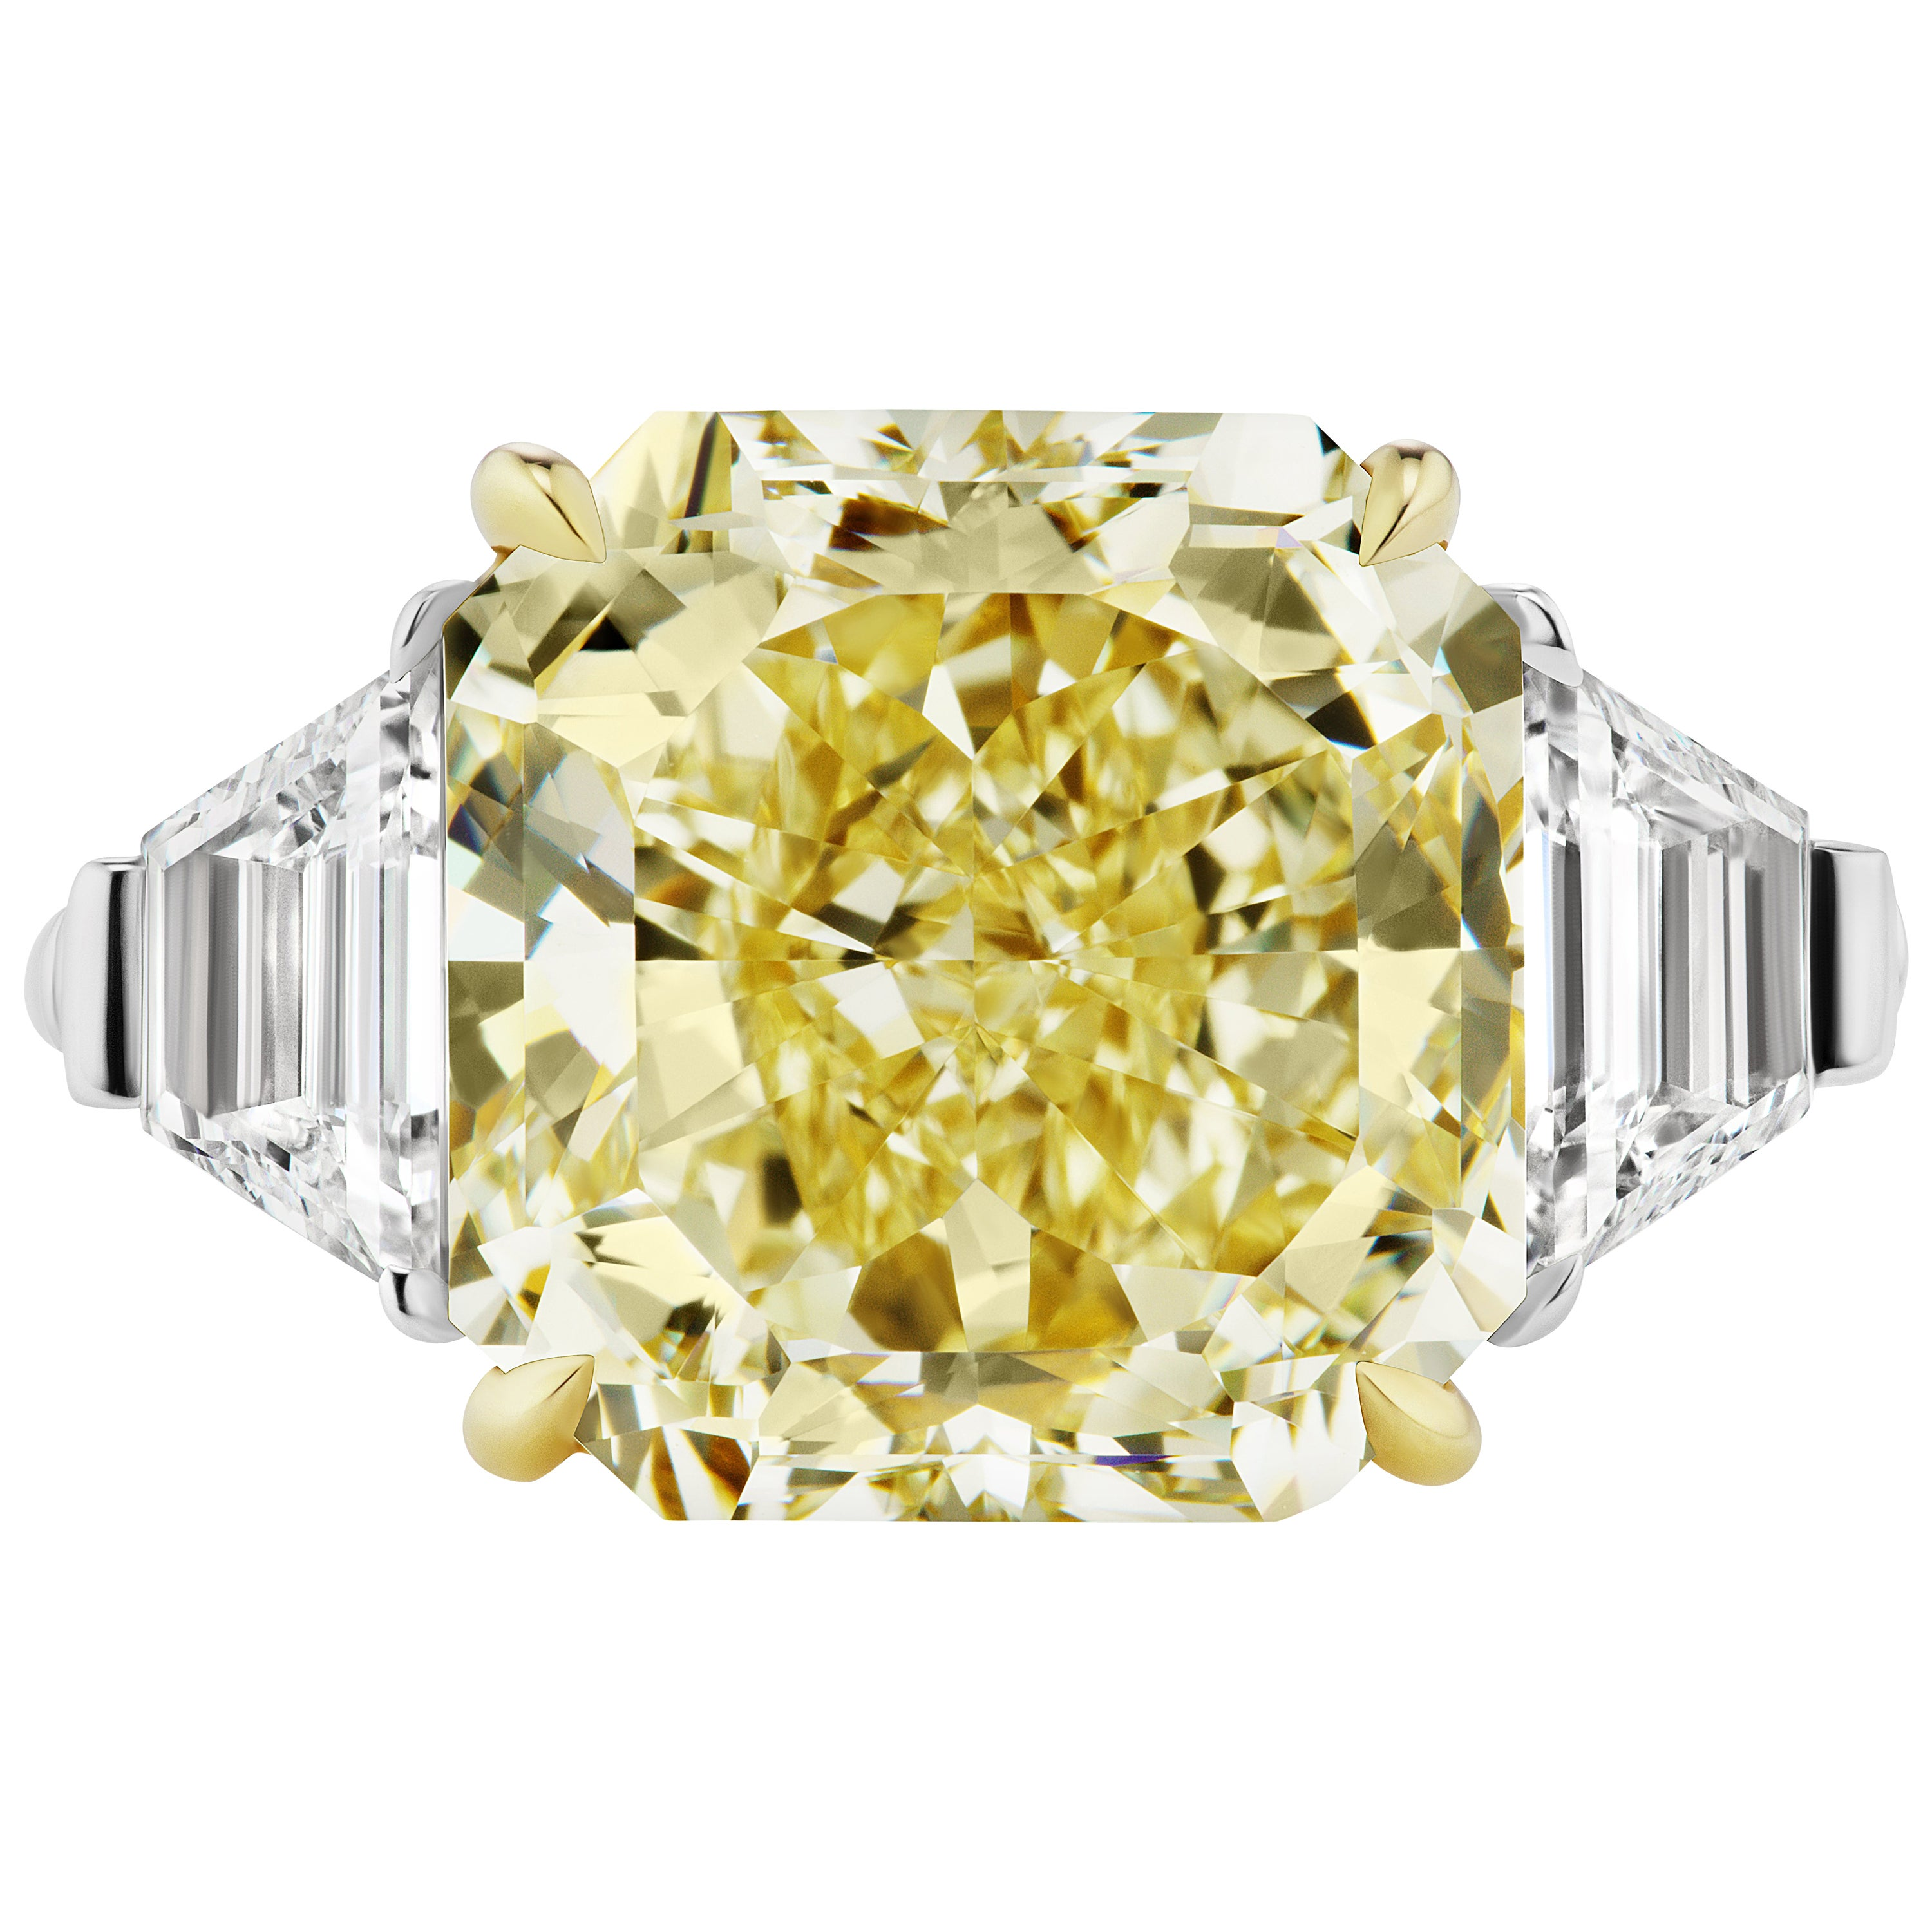 Scarselli GIA Certified 8 Carats Yellow Radiant Cut Diamond Engagement Ring